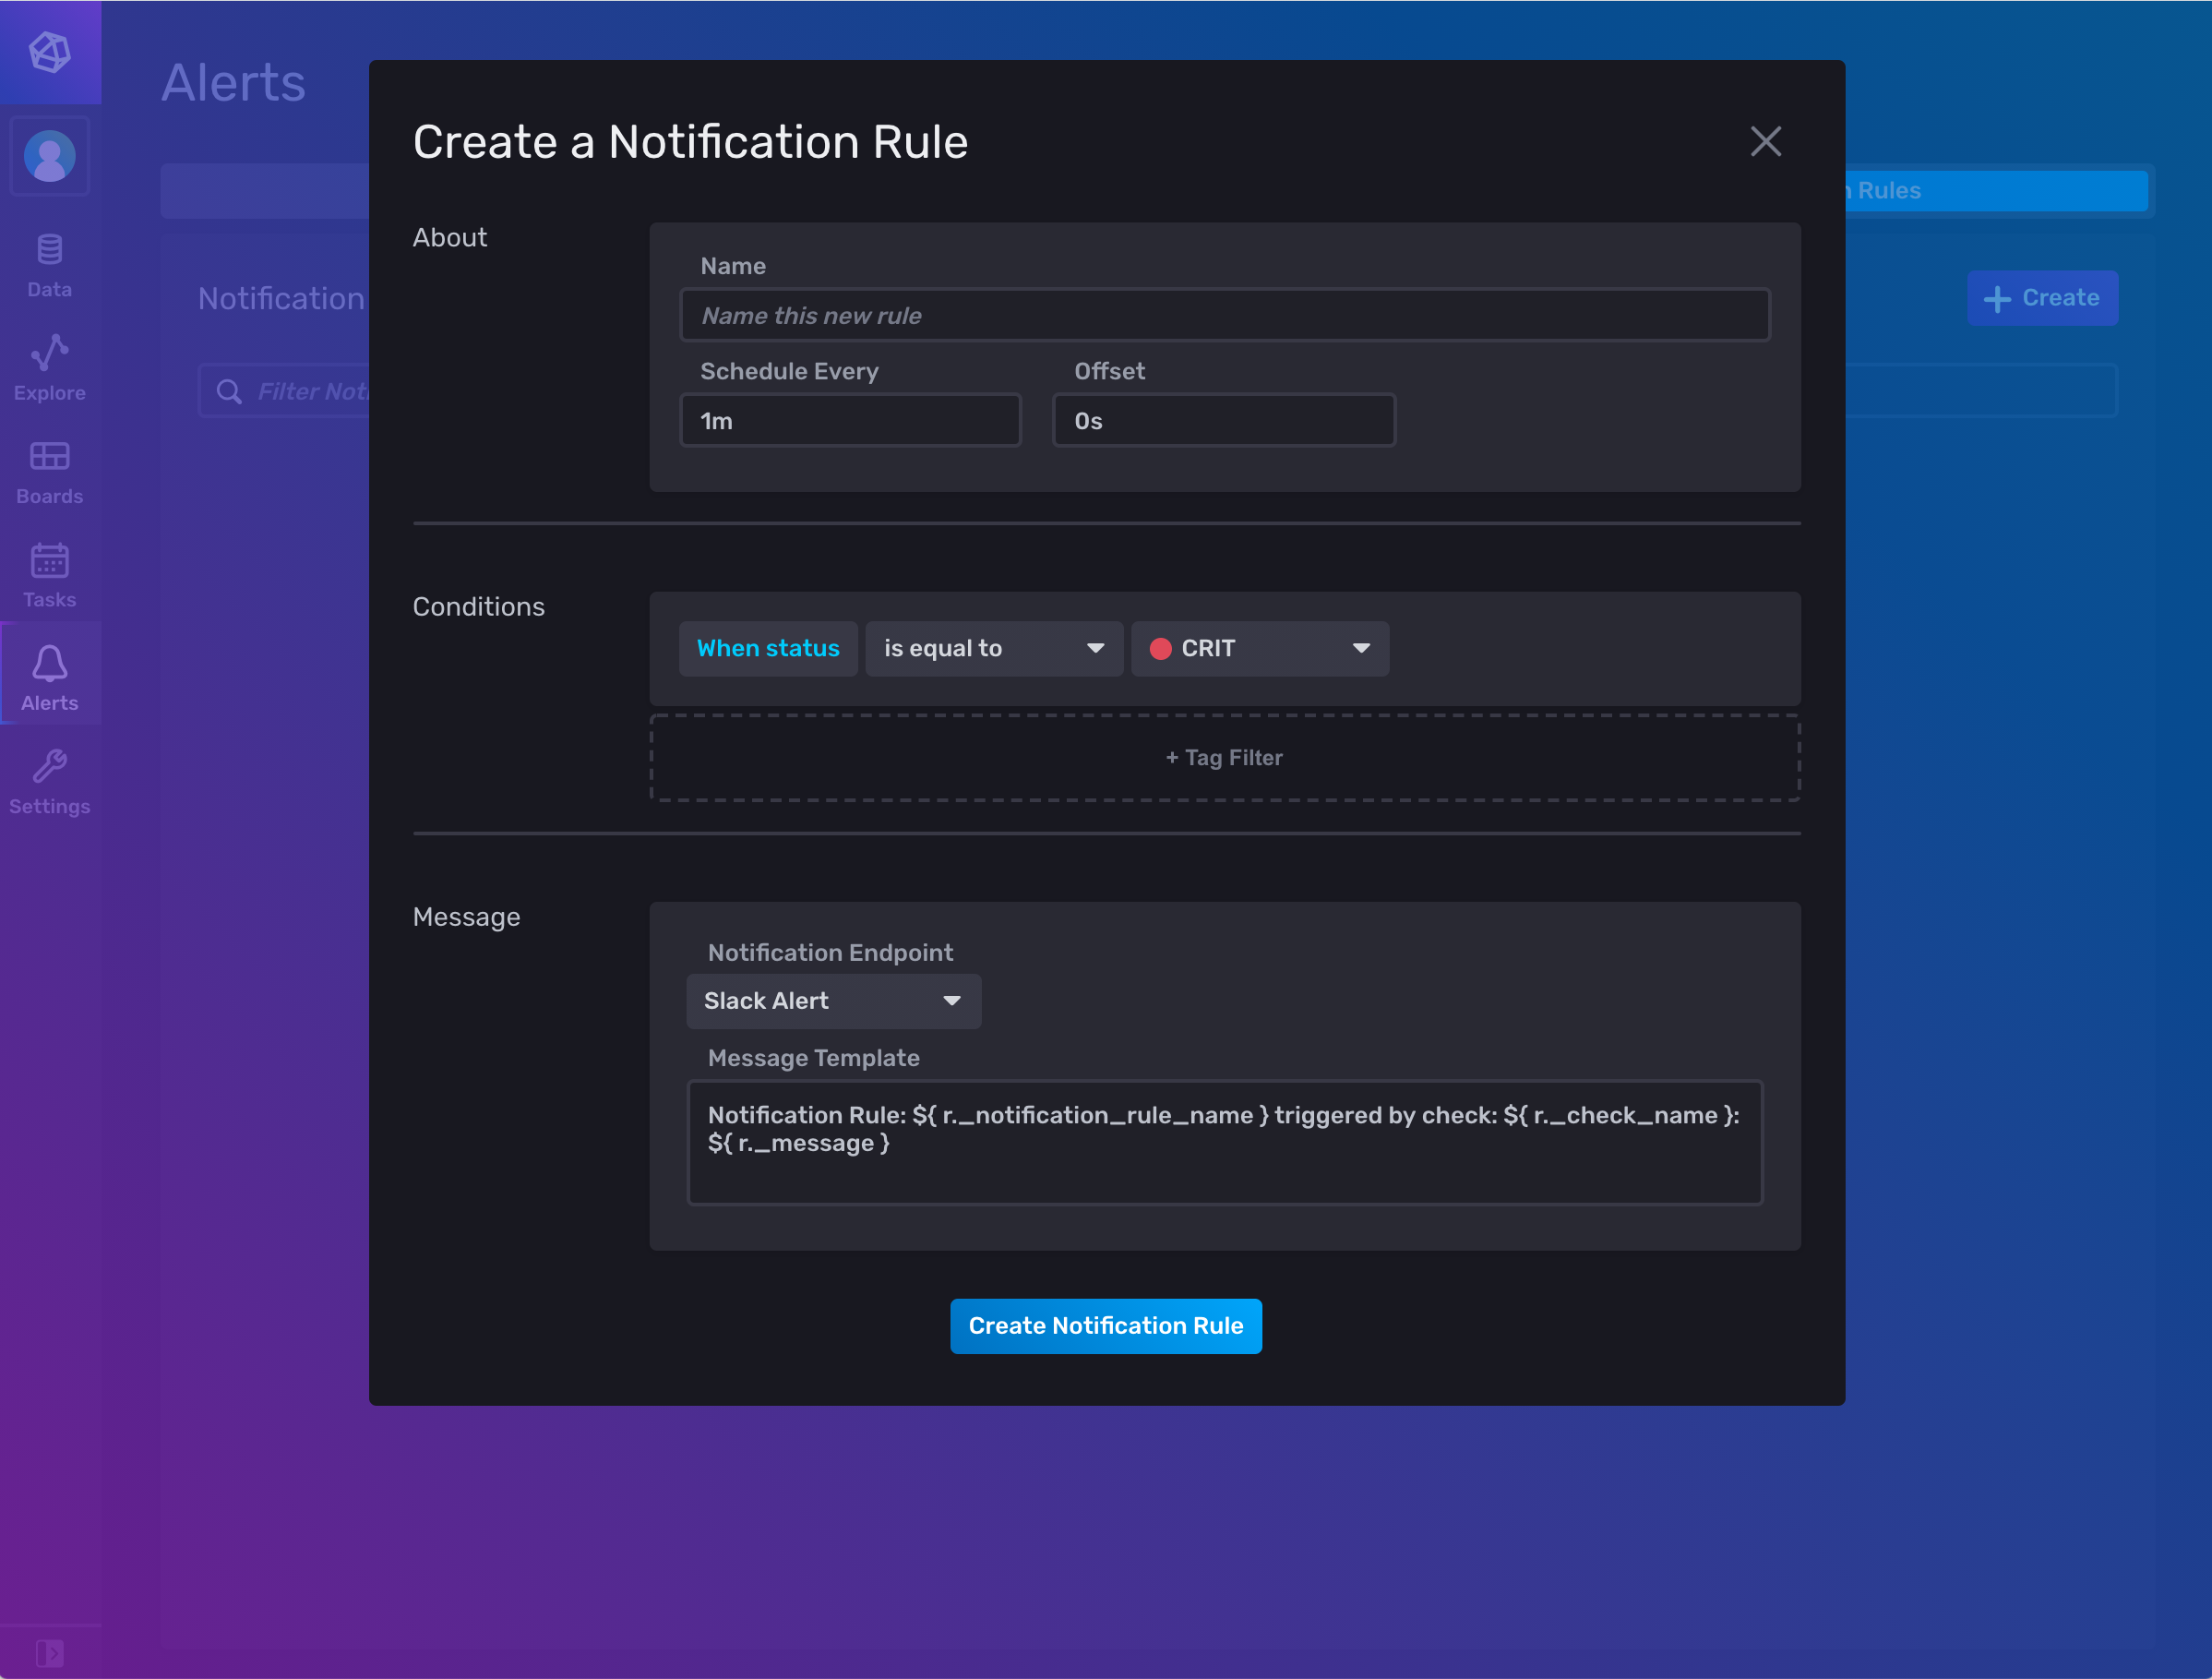 InfluxDB create notification modal